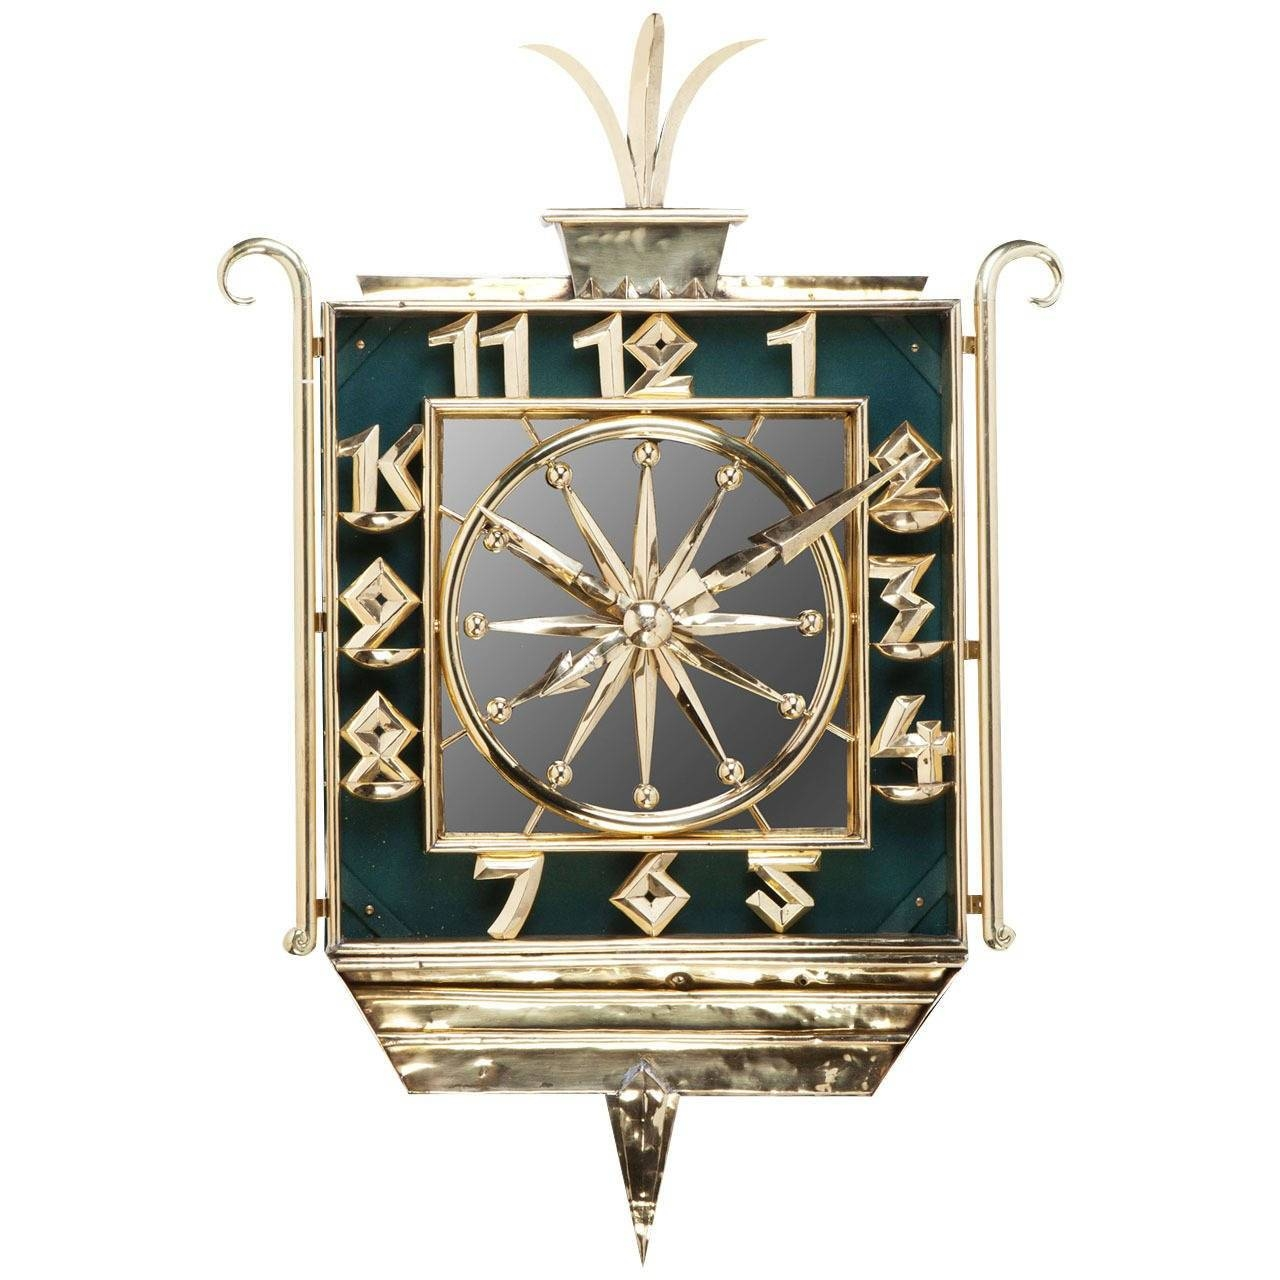 Art Deco Brass And Mirrored Wall Clock At 1Stdibs Pertaining To Best And Newest Art Deco Wall Clocks (Gallery 13 of 25)